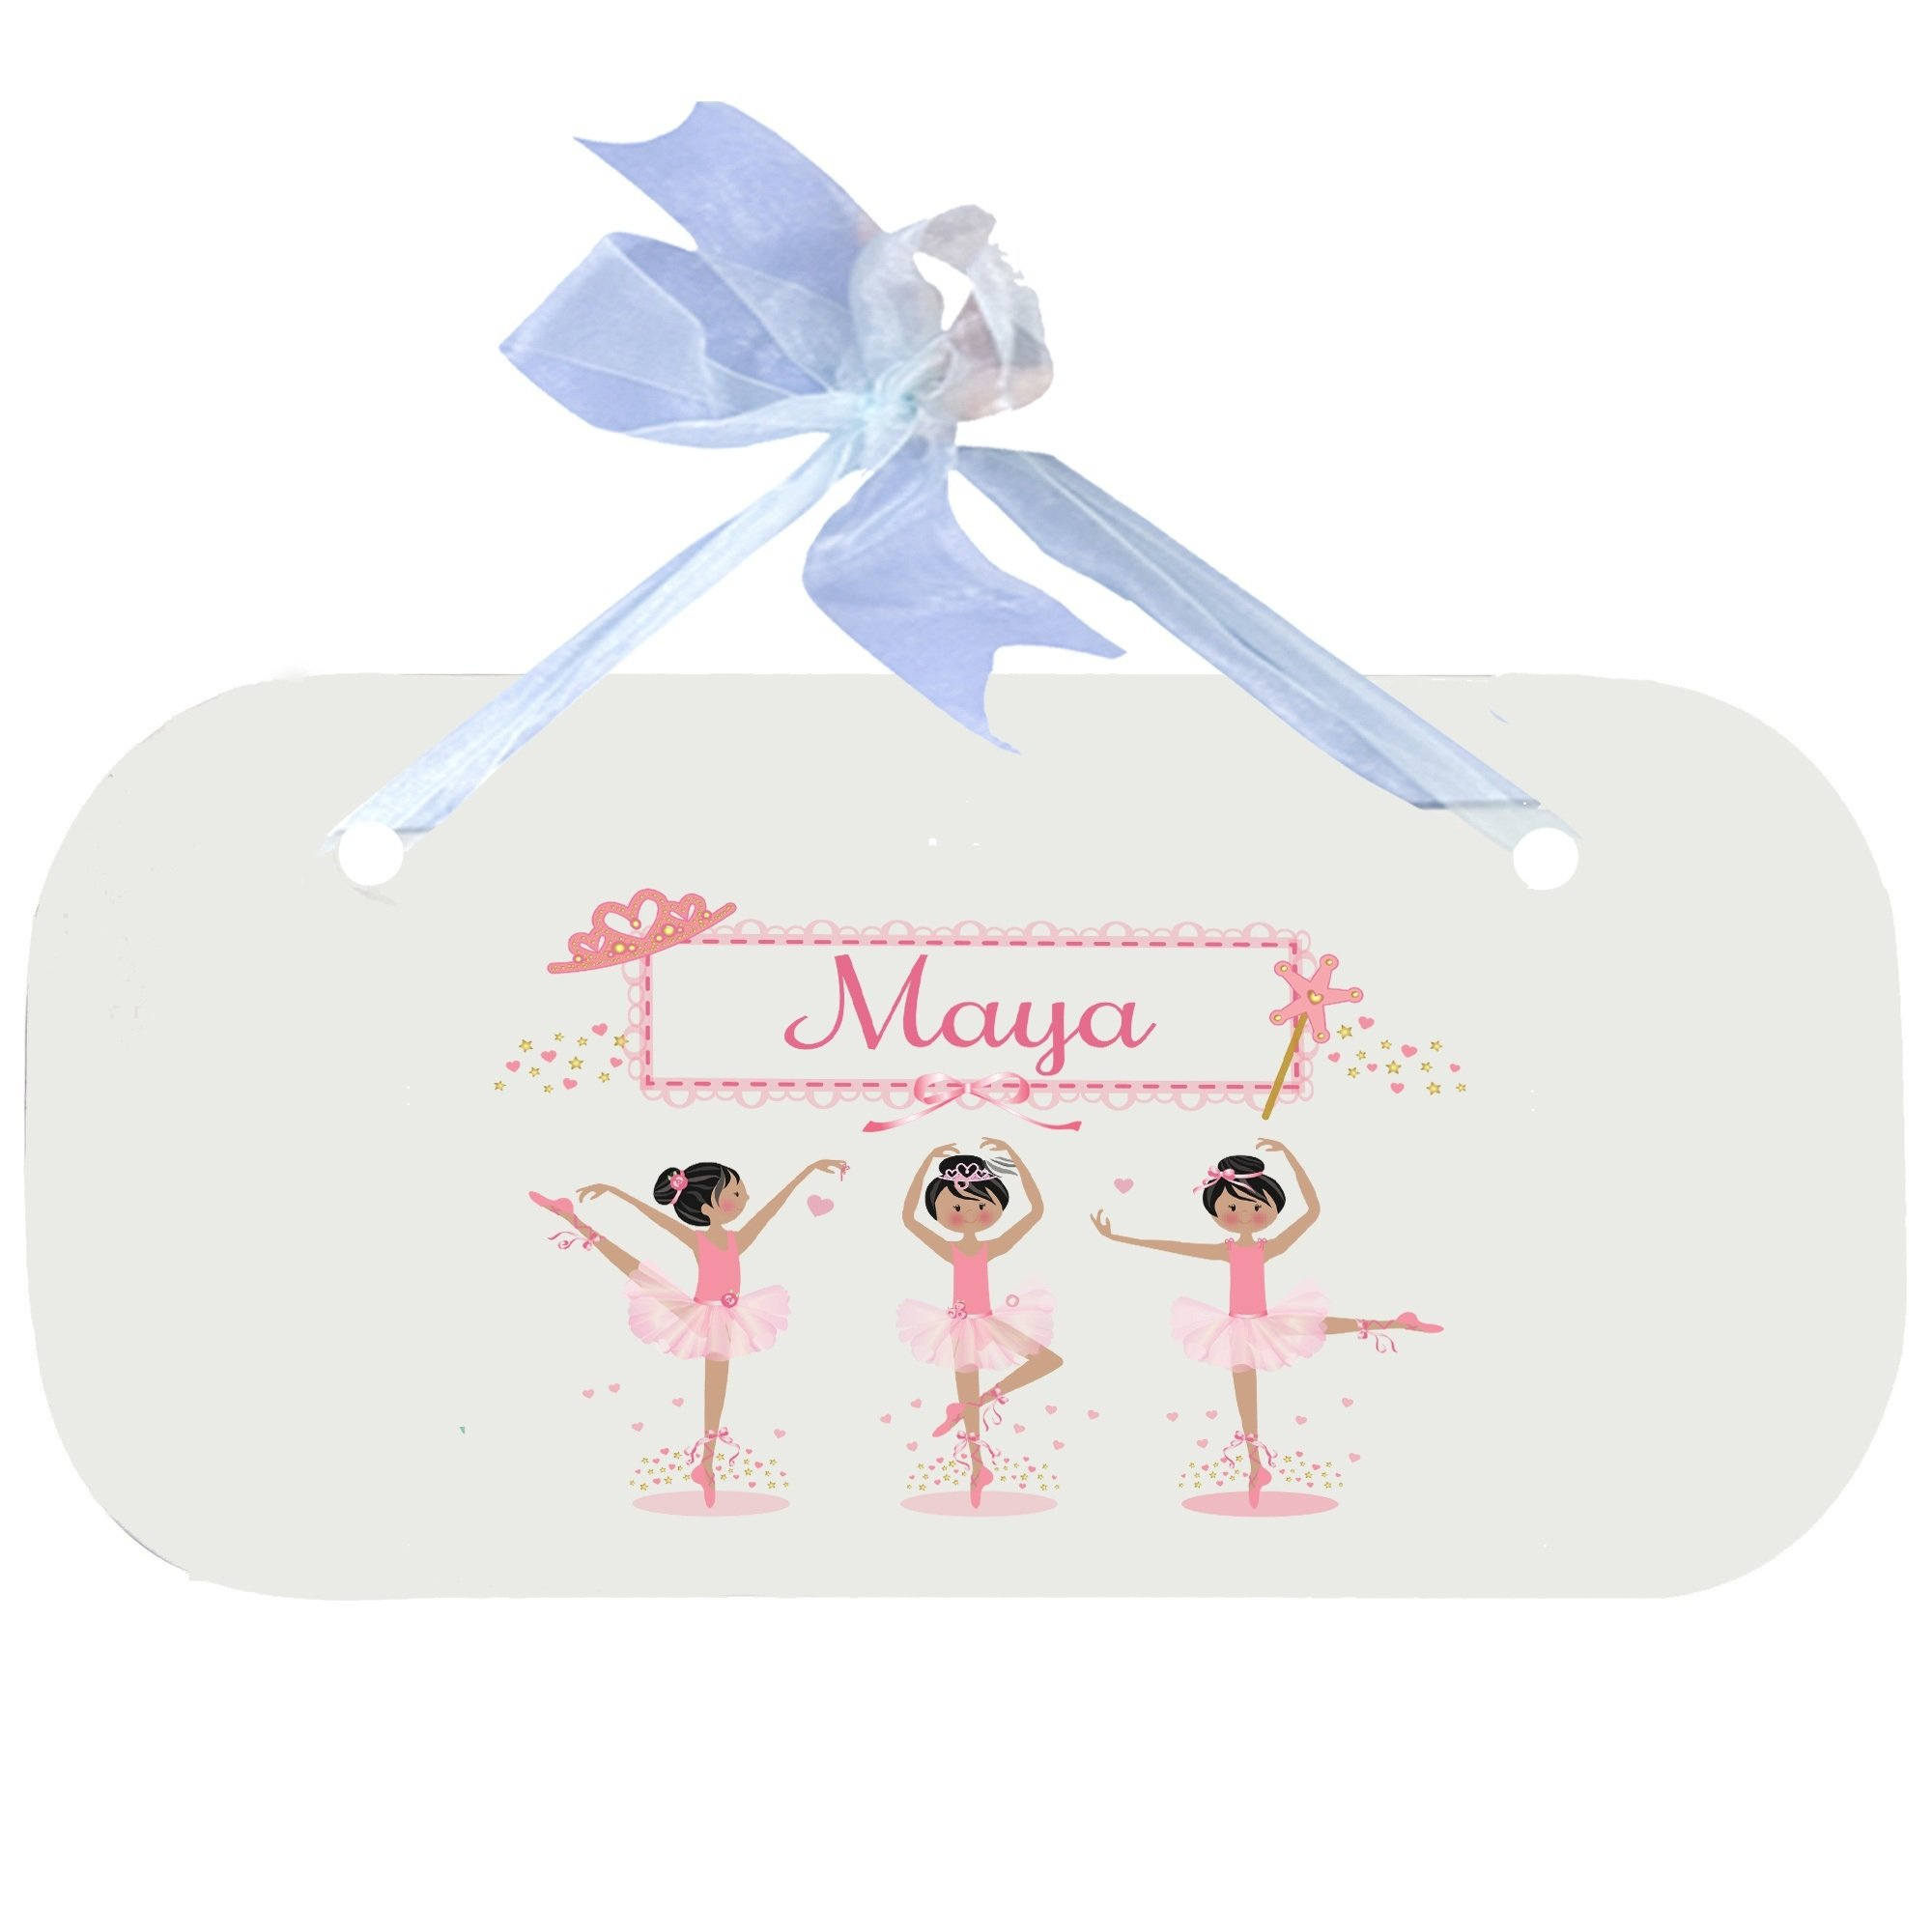 Personalized Ballerina Black Hair Wooden Door Hanger With Blue Ribbon